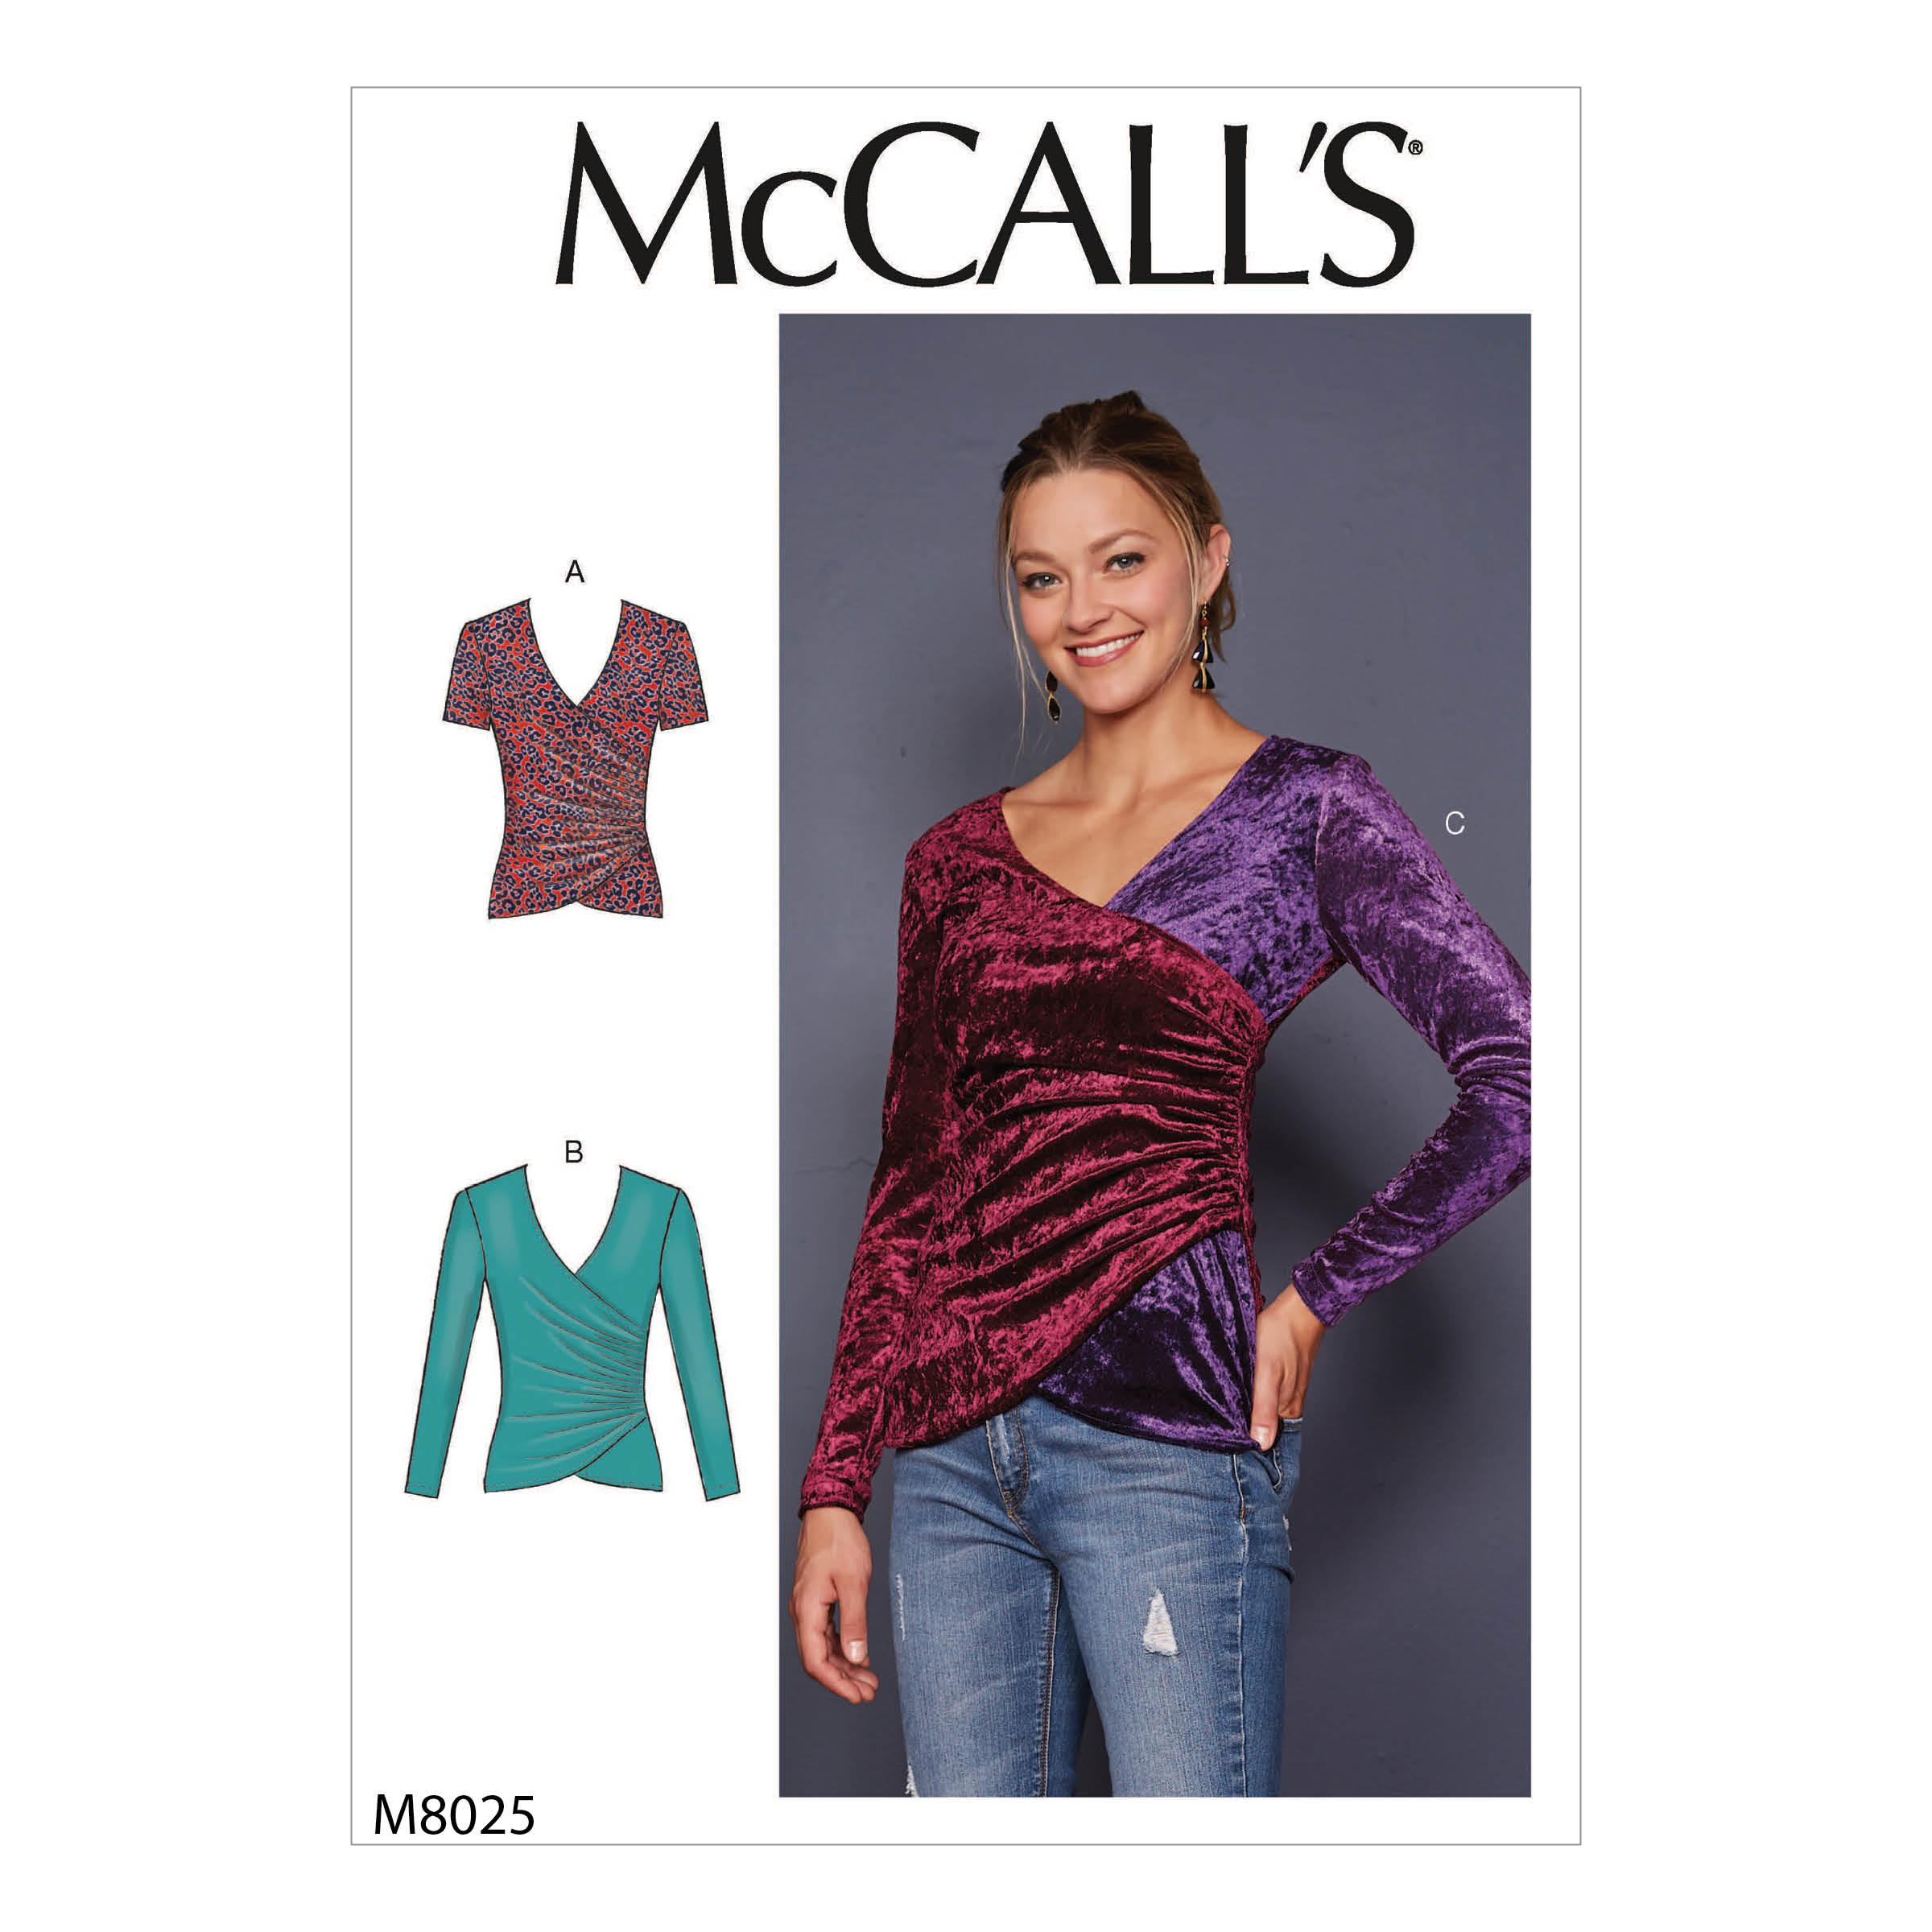 McCalls M8025 Misses Tops